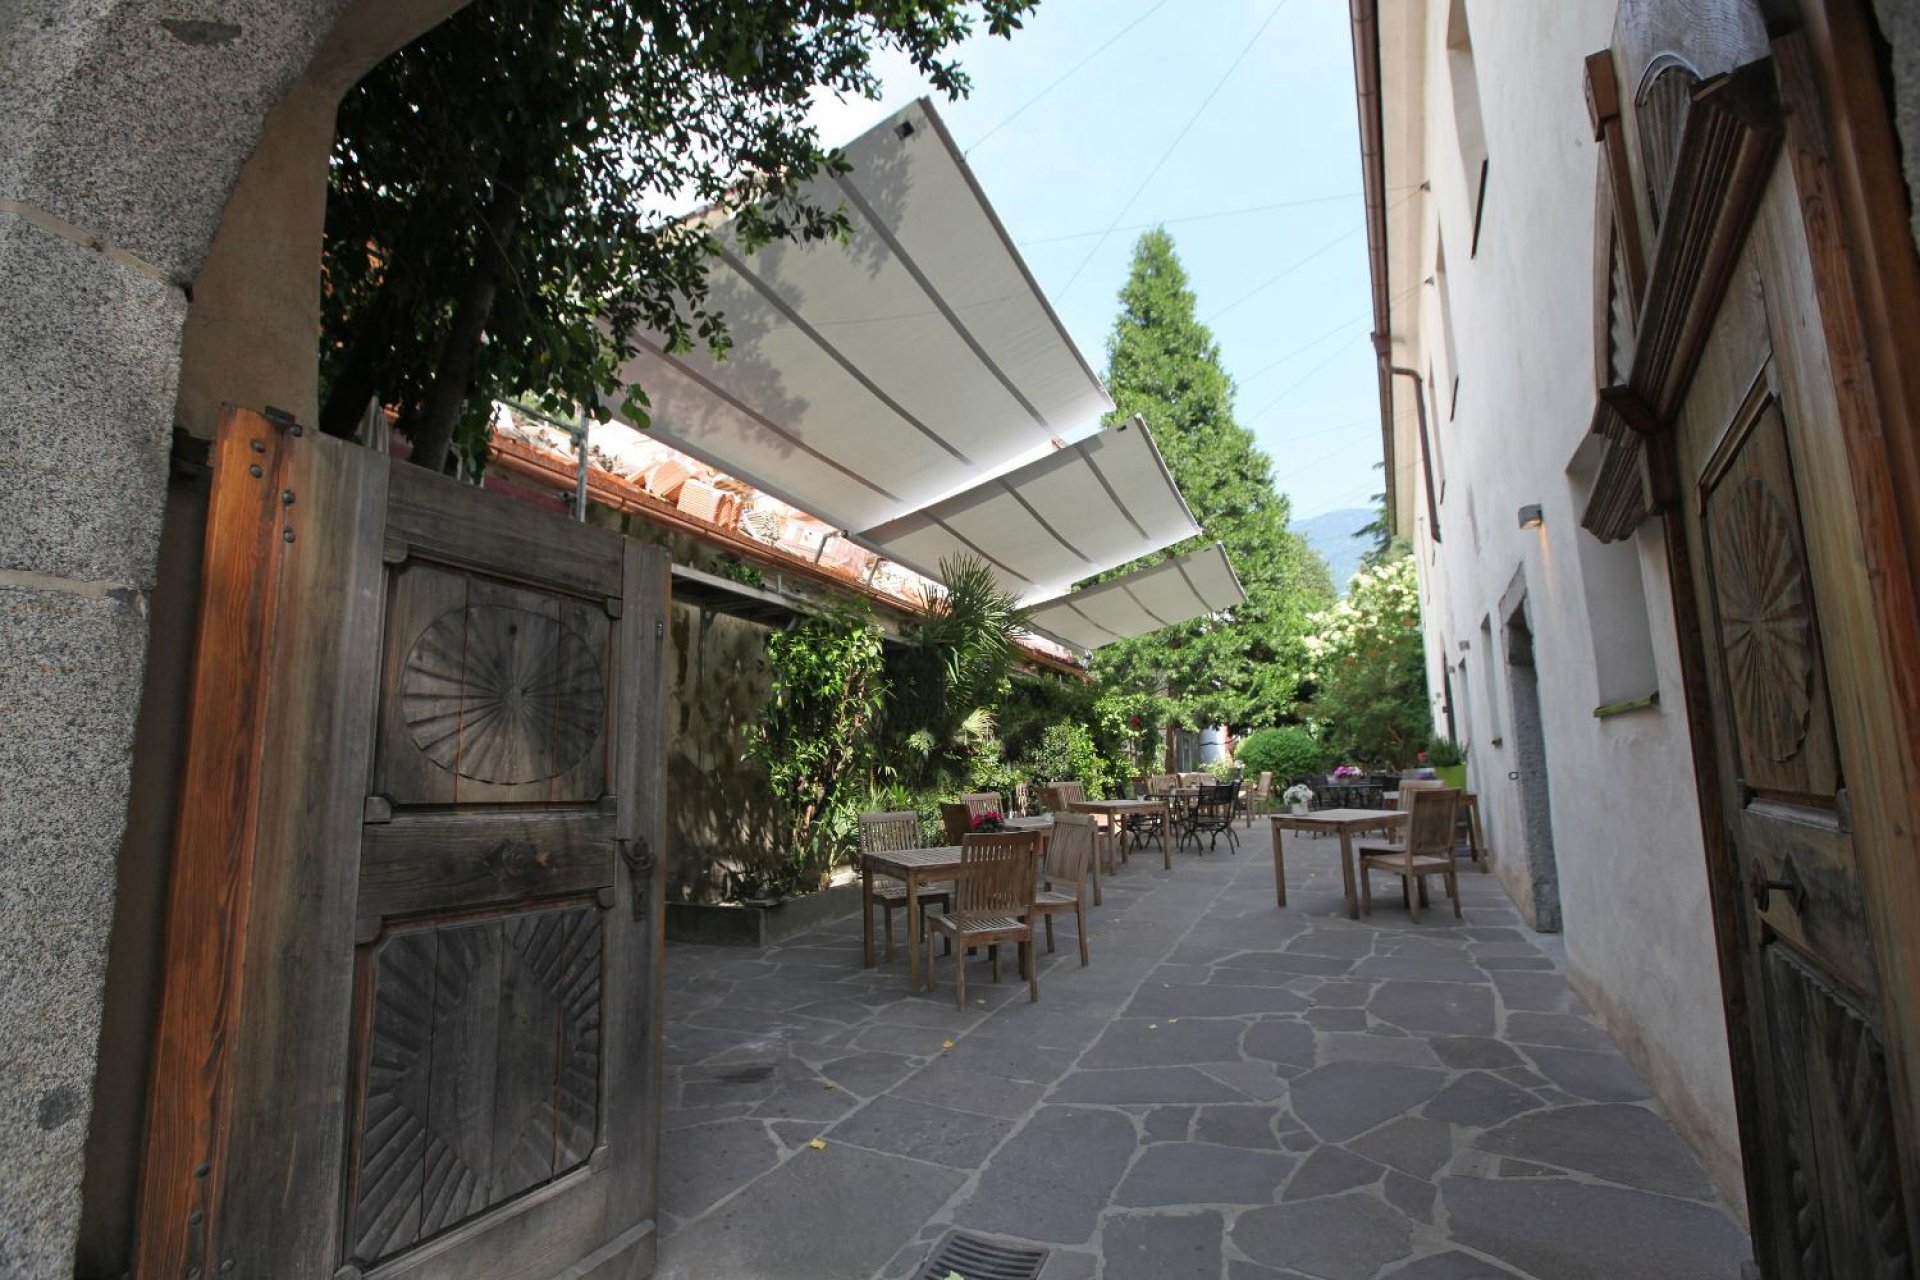 Castel Kallmünz in Meran with rectangular SunSquare sunsails.